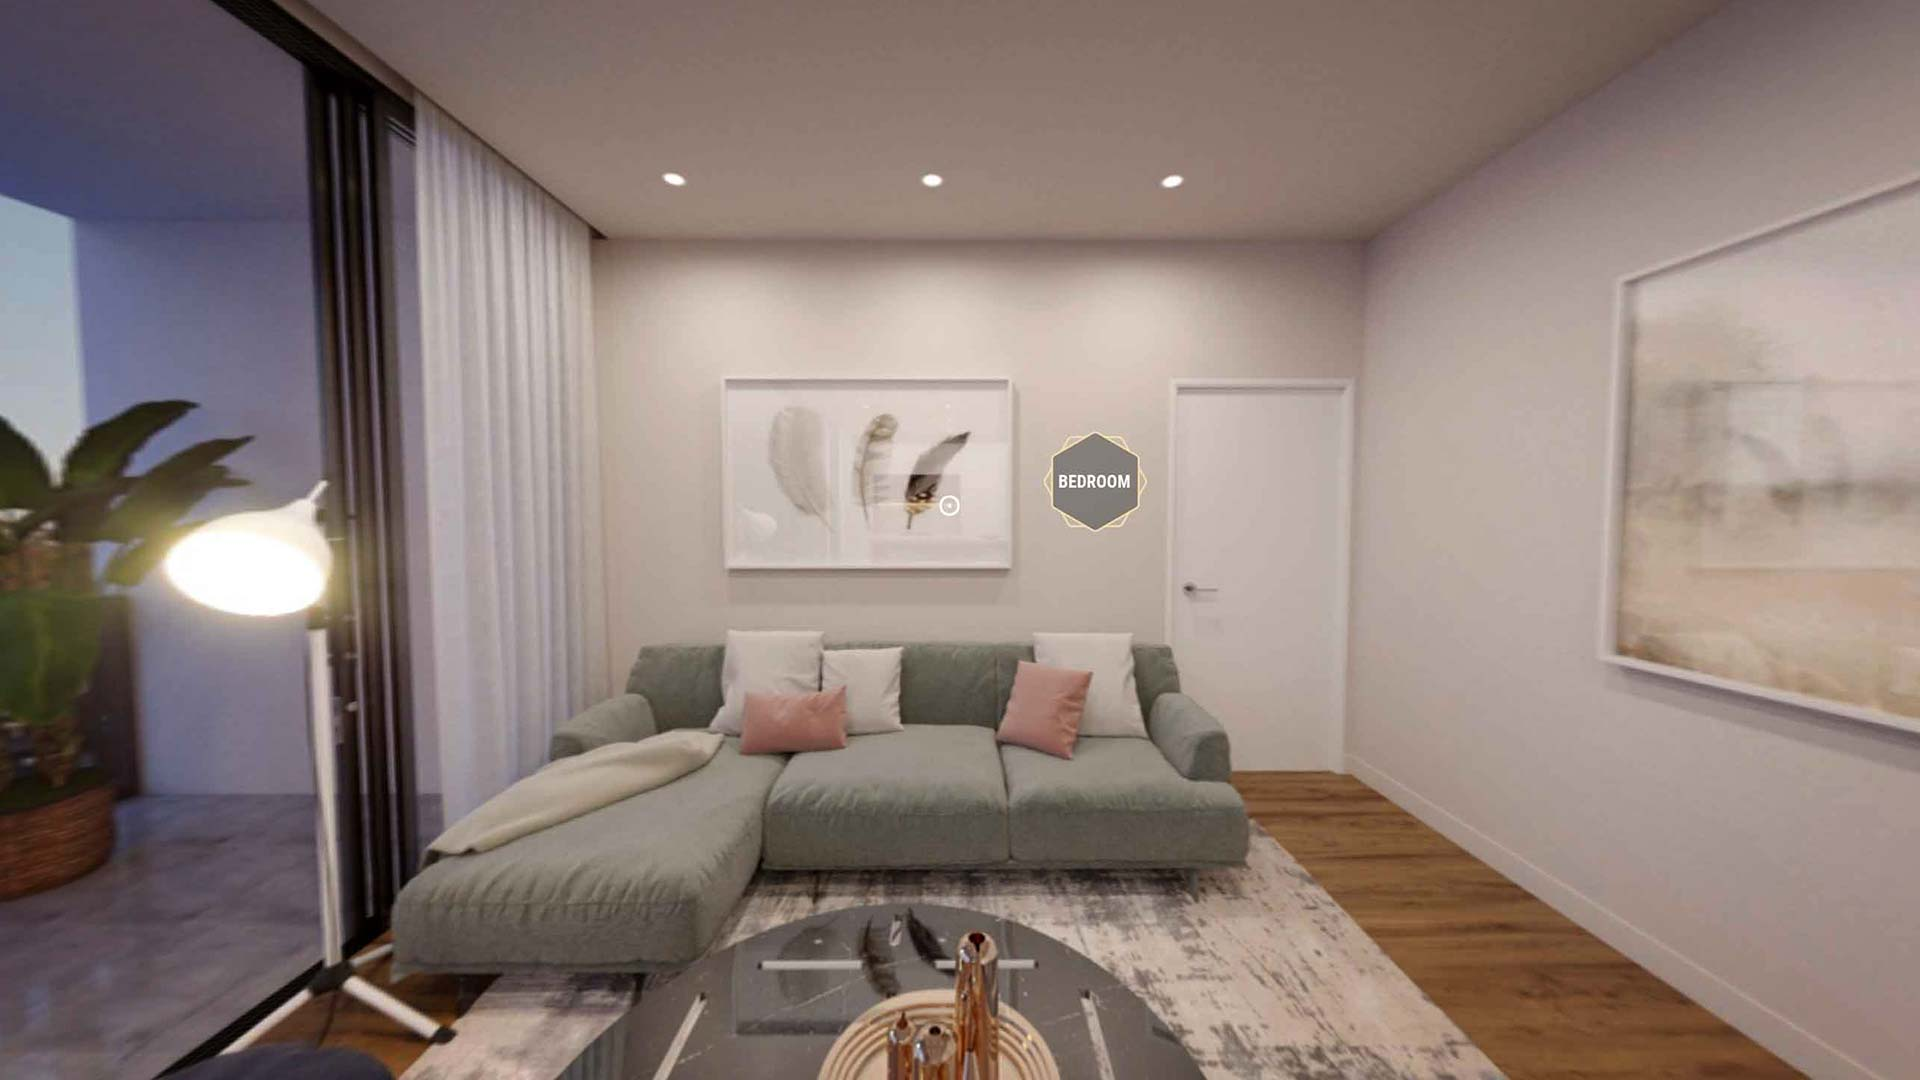 Real Estate VR Image of Chatswood Rose VR by Start Beyond 01